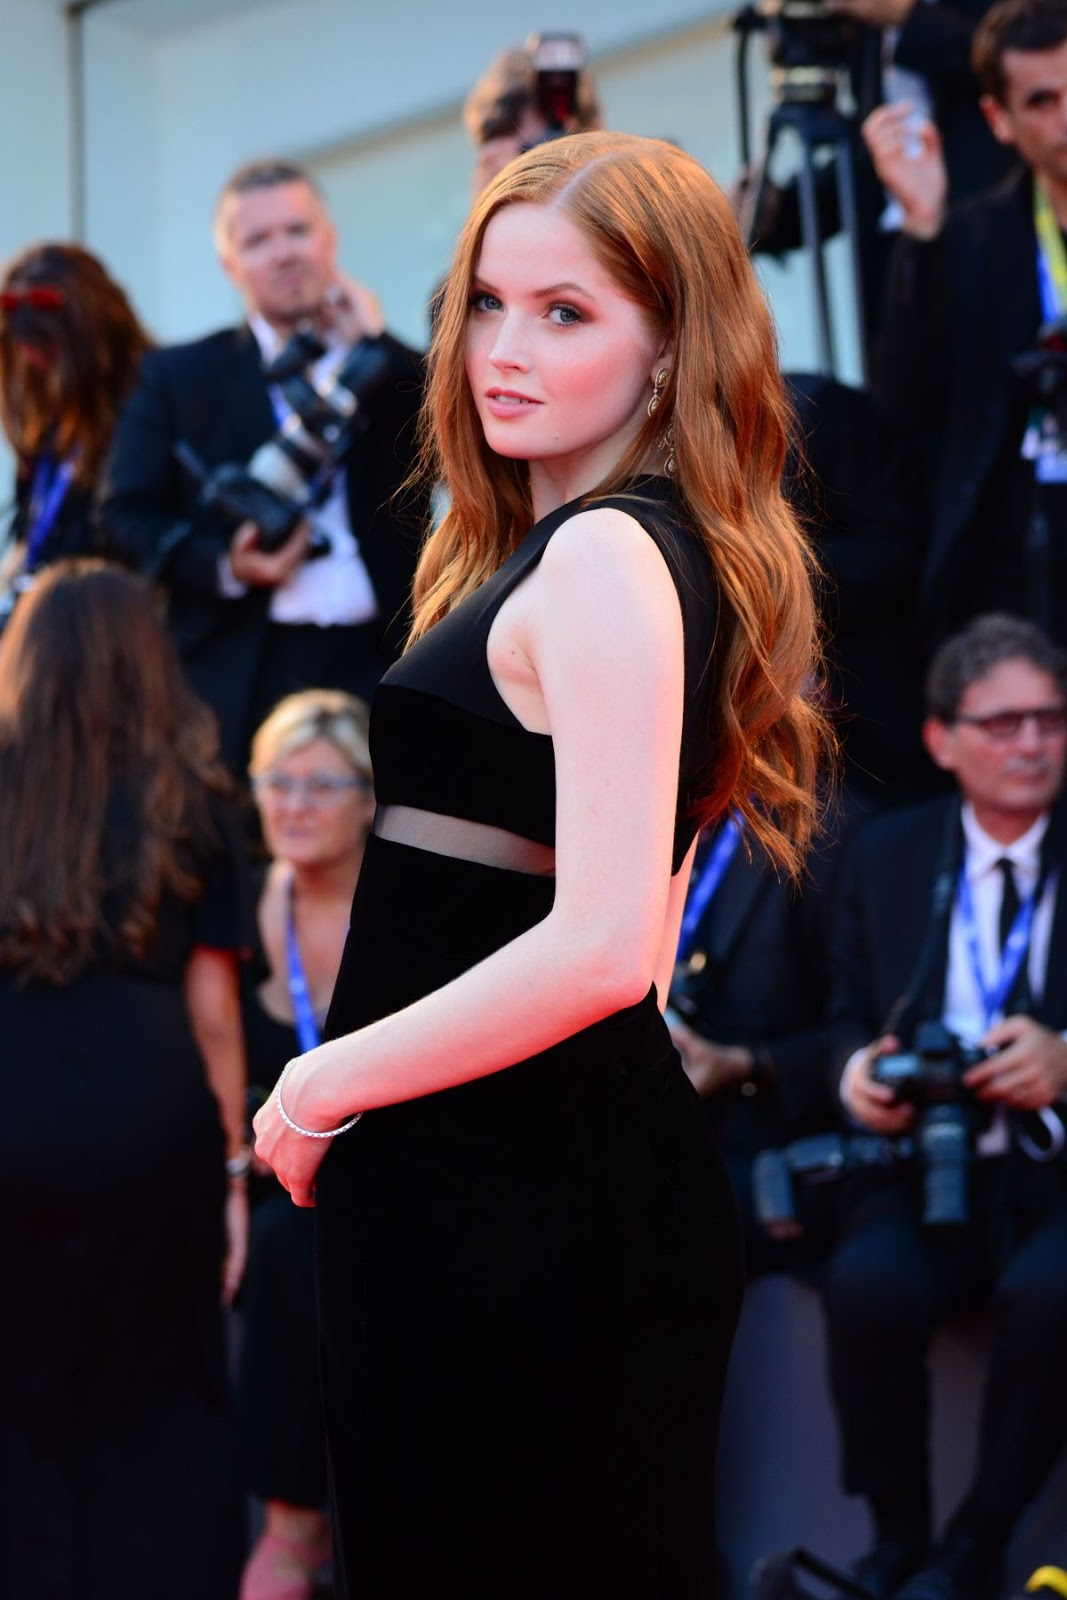 Full HQ Photos of 'Nocturnal Animals' actress Ellie Bamber At Franca Chaos And Creation Premiere At 2016 Venice Film Festival